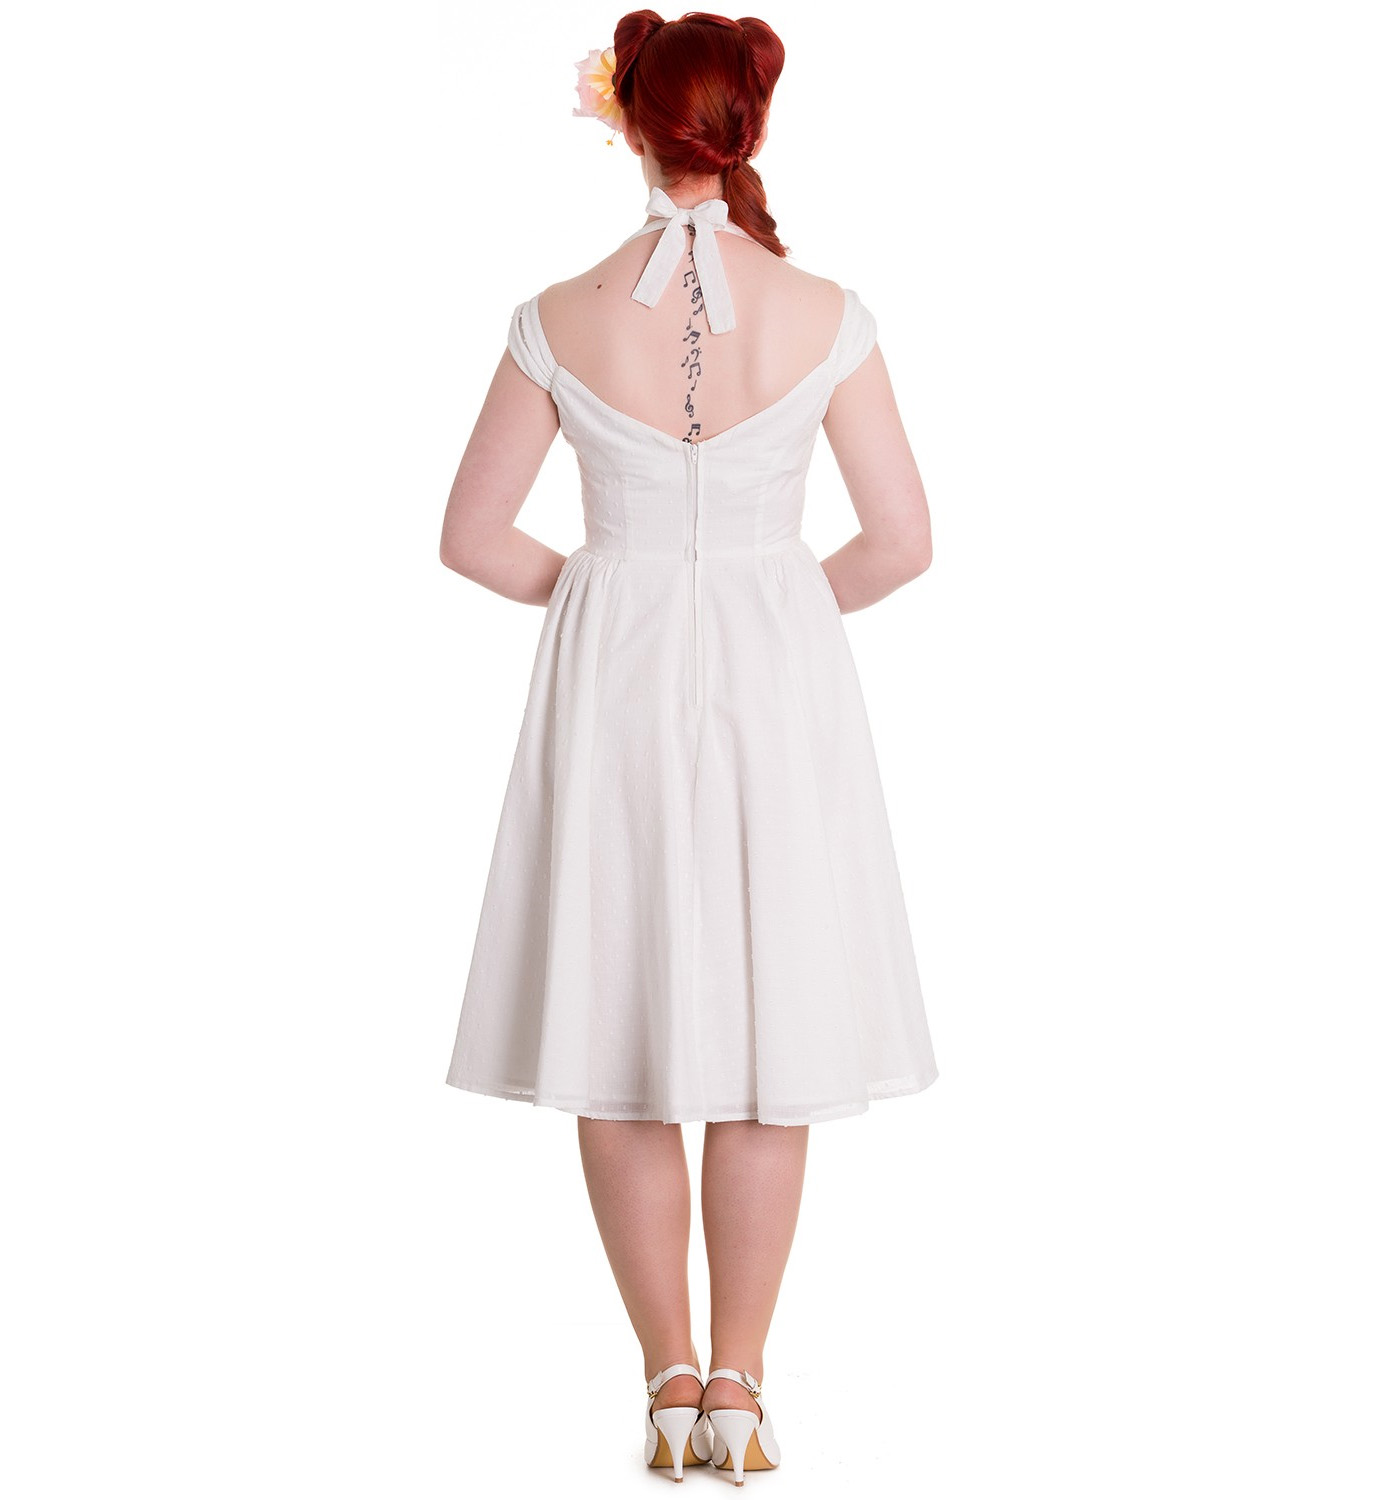 Hell-Bunny-Pin-Up-Party-50s-Dress-Vintage-Rockabilly-EVELINE-White-All-Sizes thumbnail 11